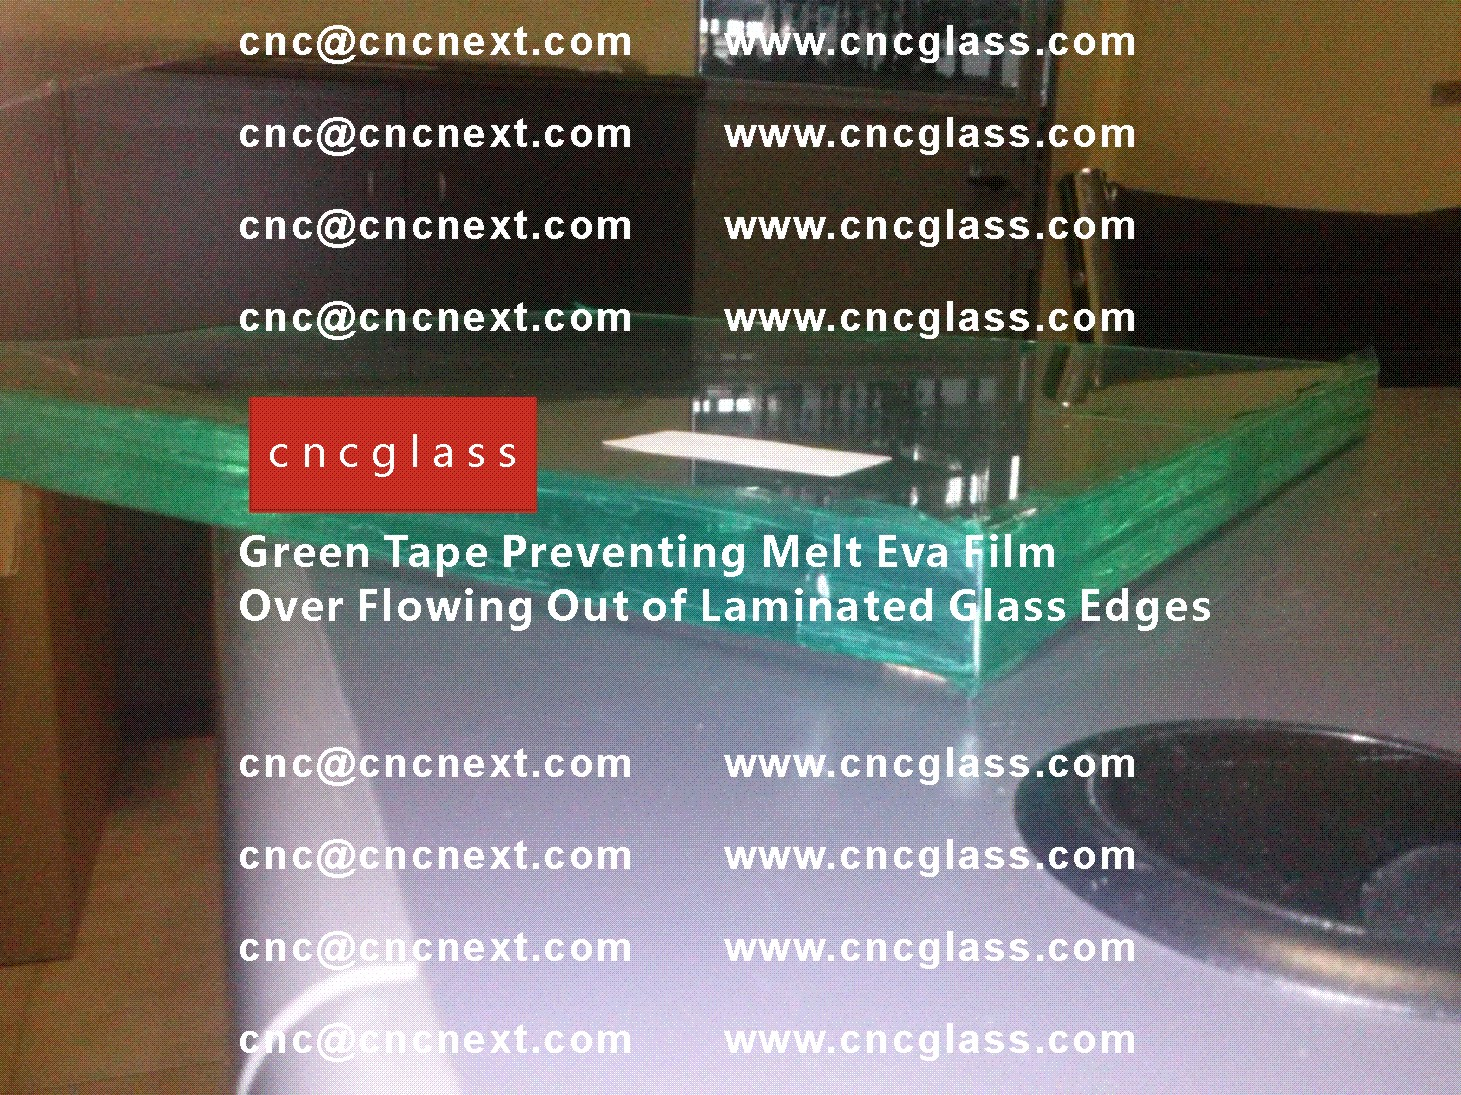 002 Green Tape Preventing Melt Eva Film Over Flowing Out of Laminated Glass Edges